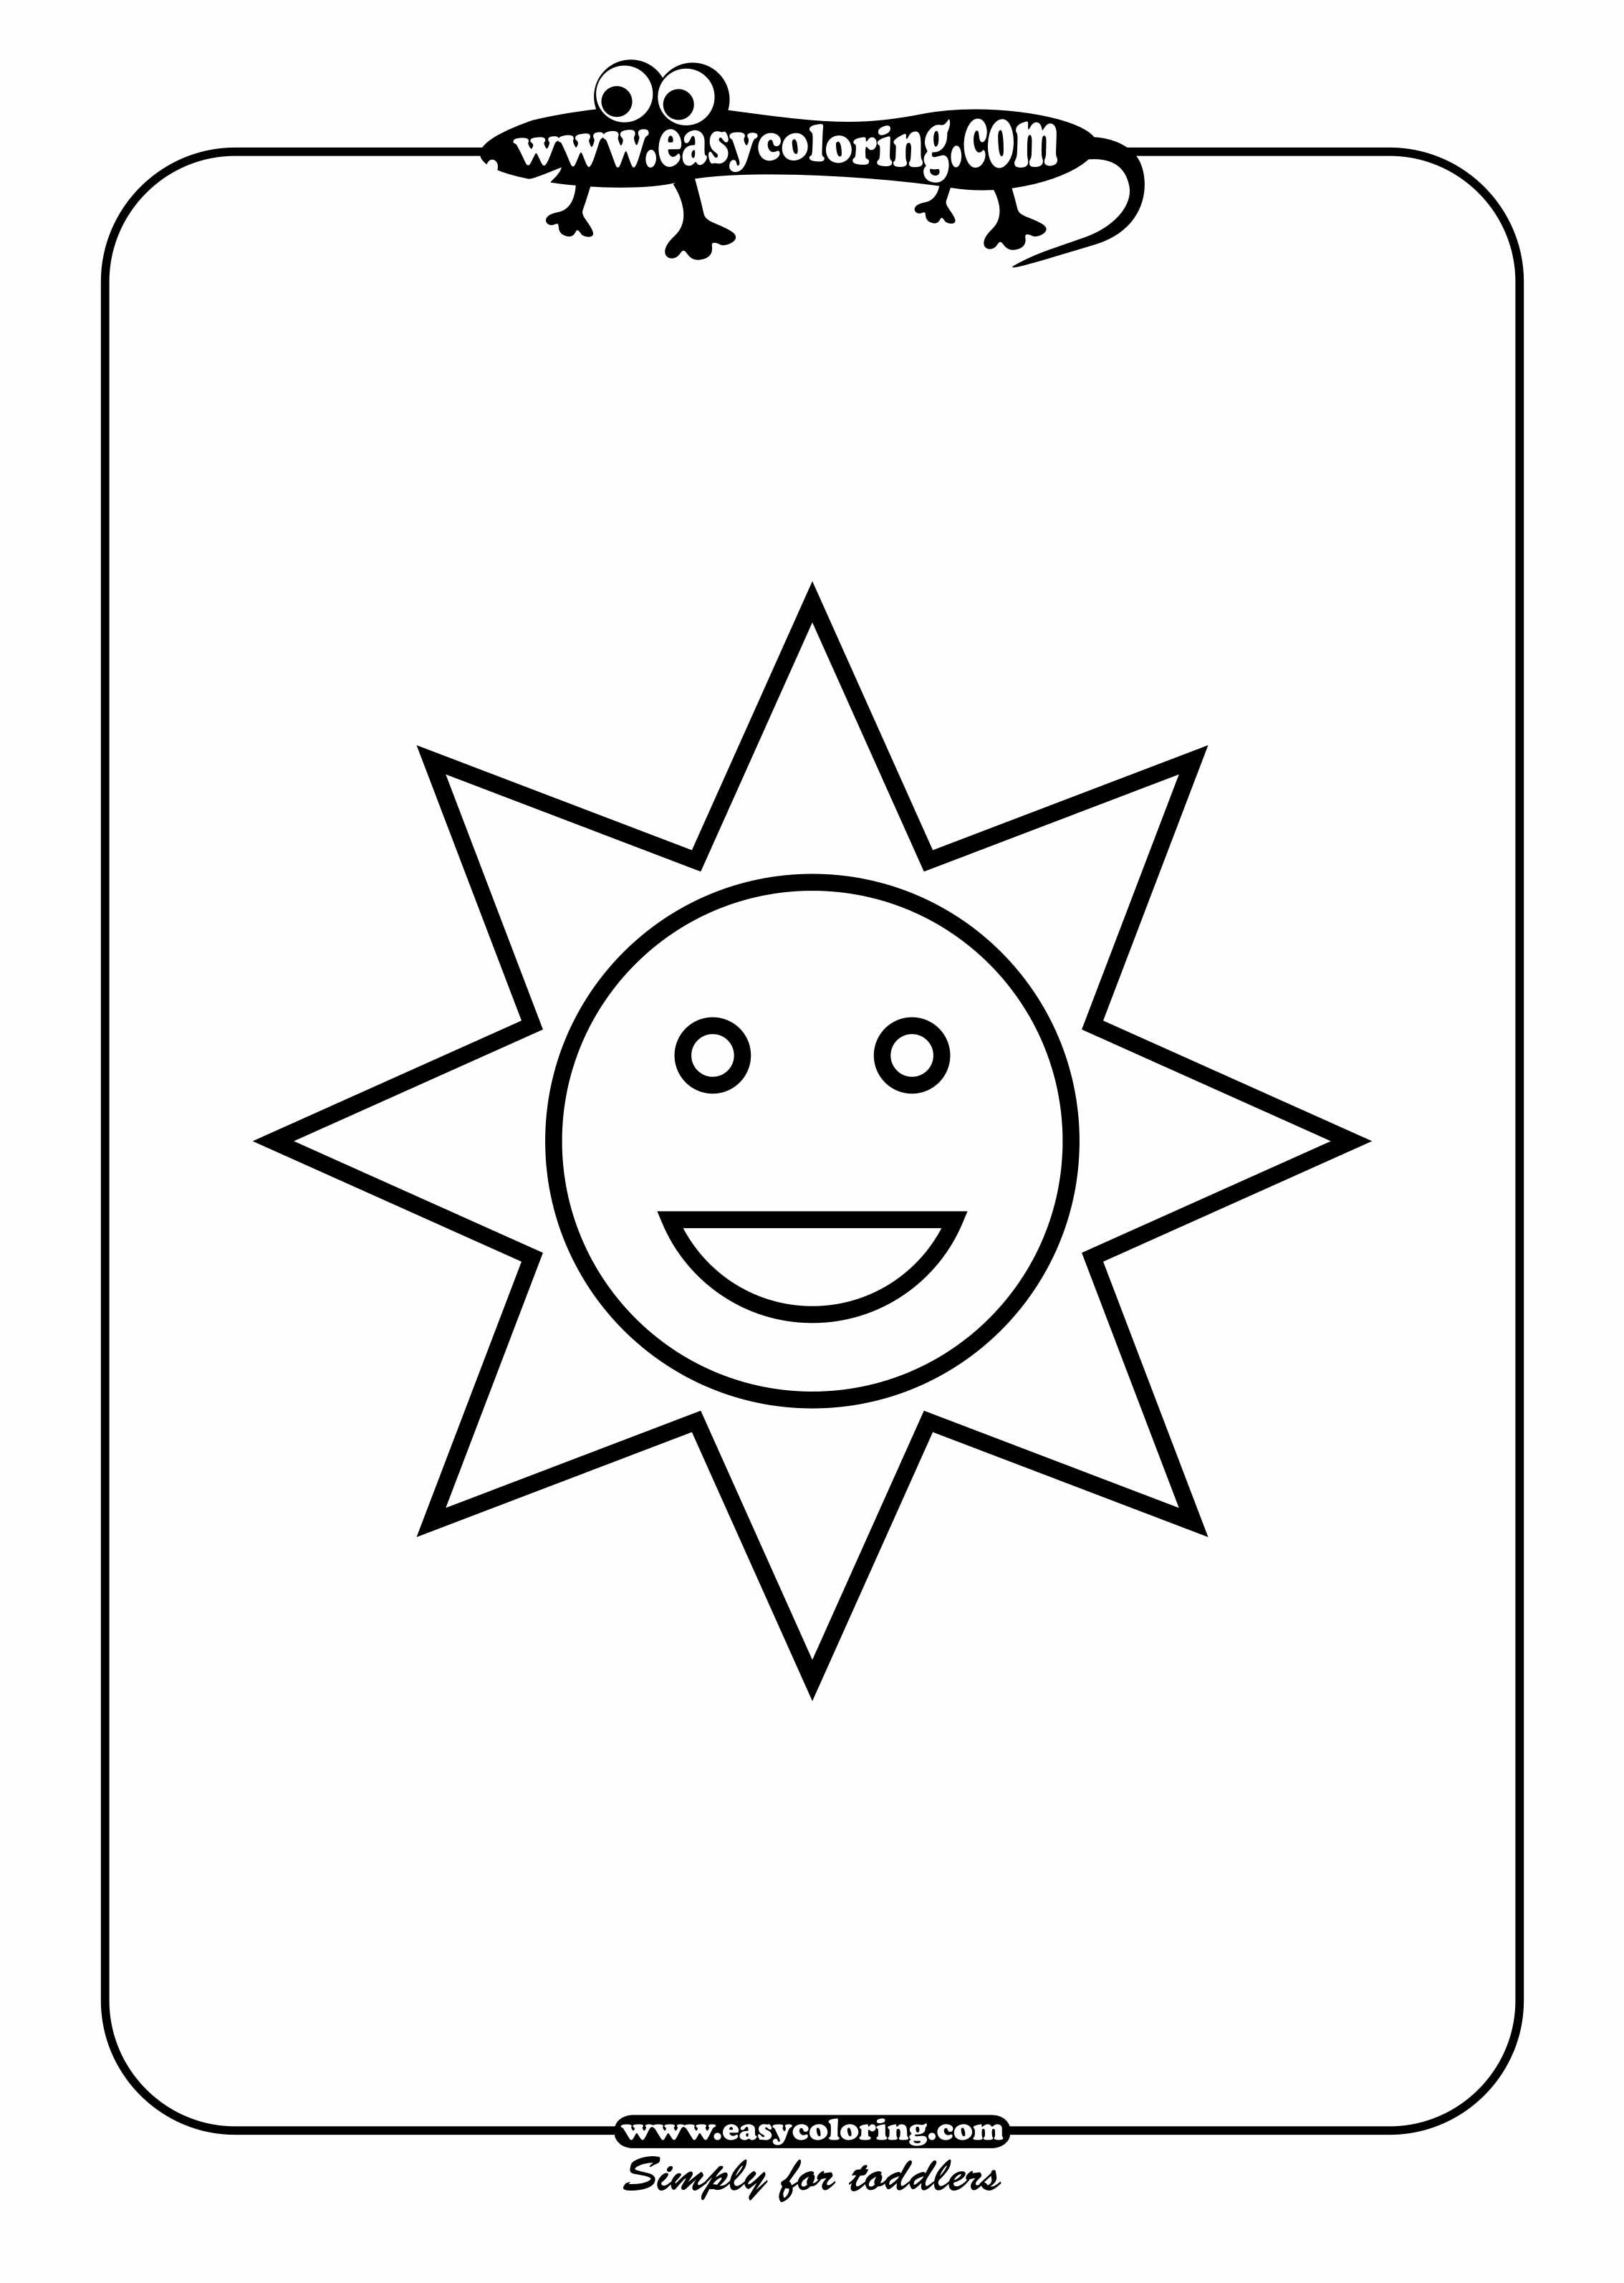 Sun - Easy coloring shapes Lots of easy coloring pages on this ...